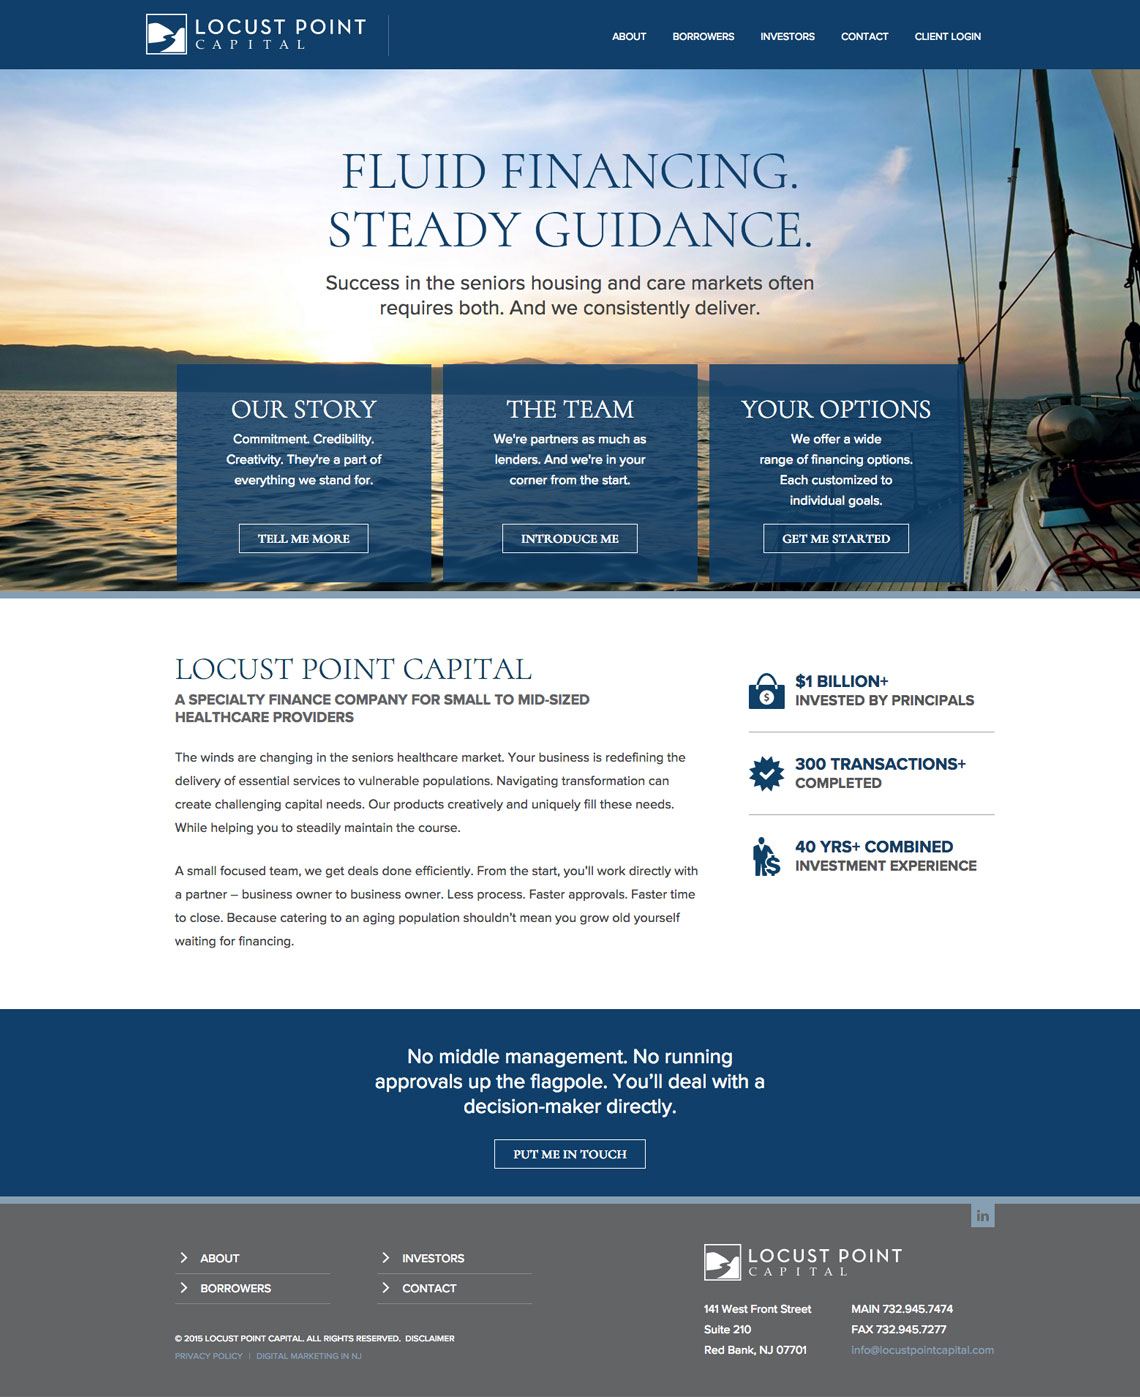 Professional Web Design for Locust Point Capital.